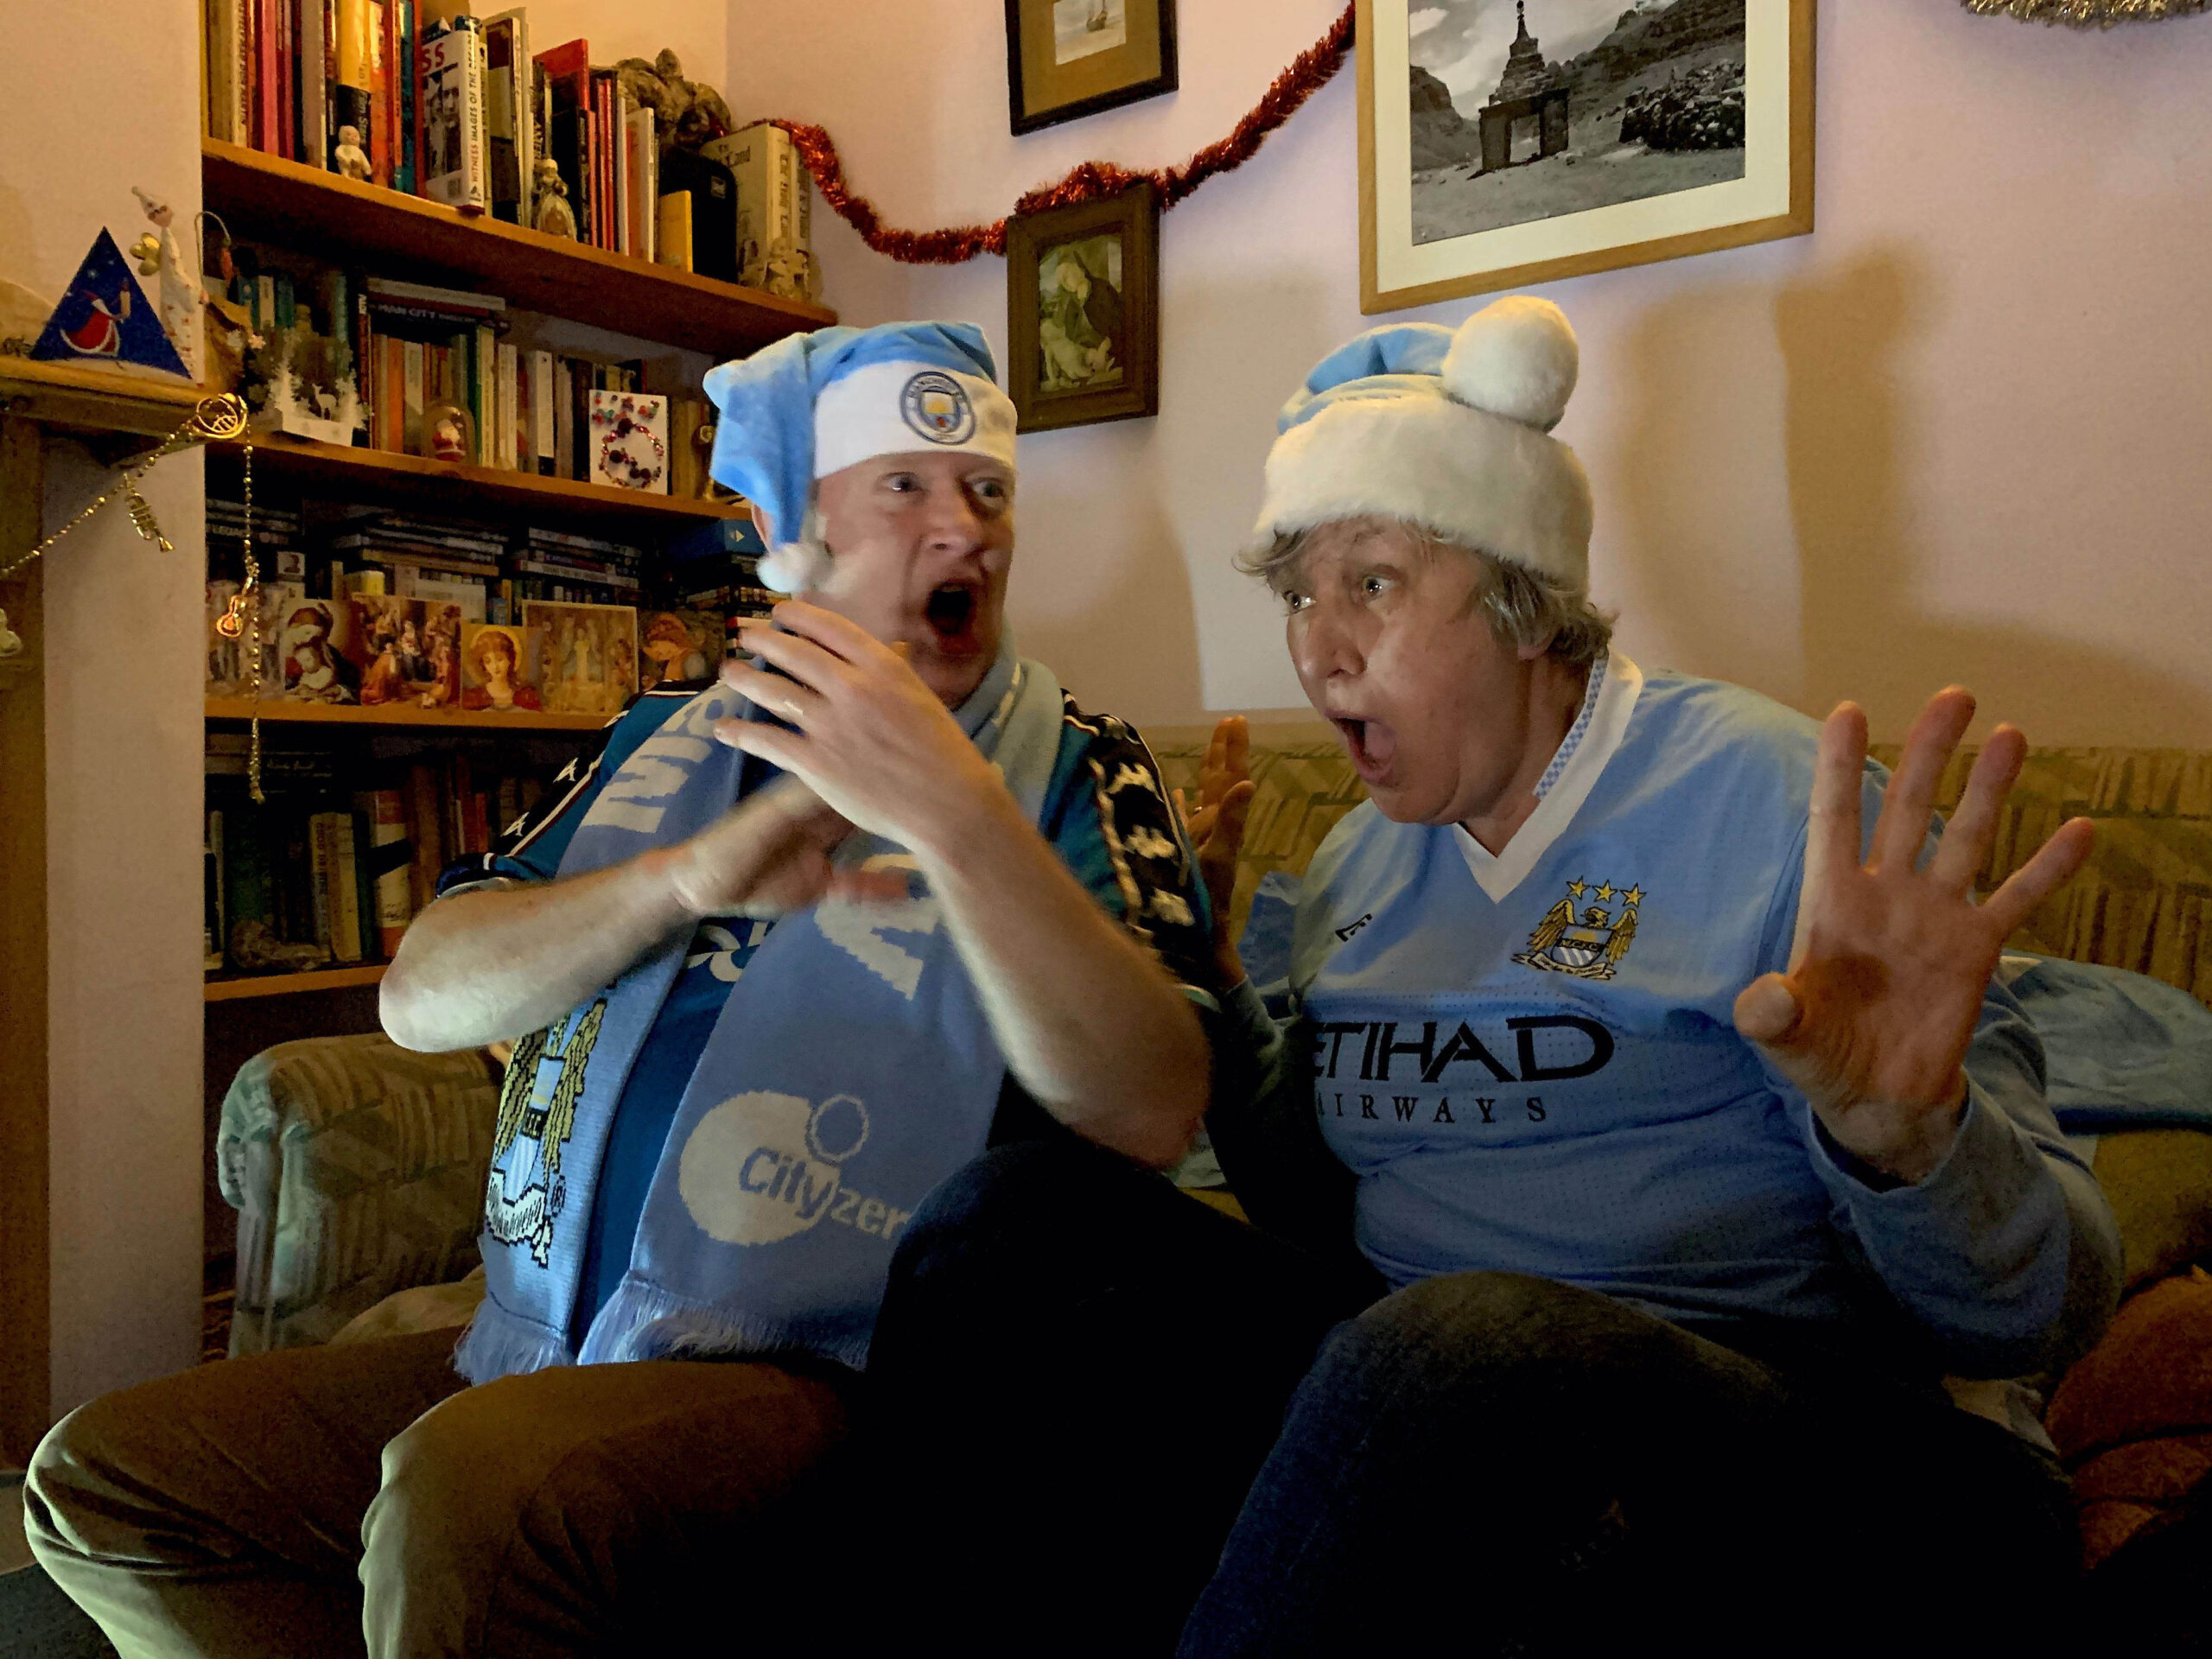 Football photographer Clarke captures a season of fans watching in lockdown